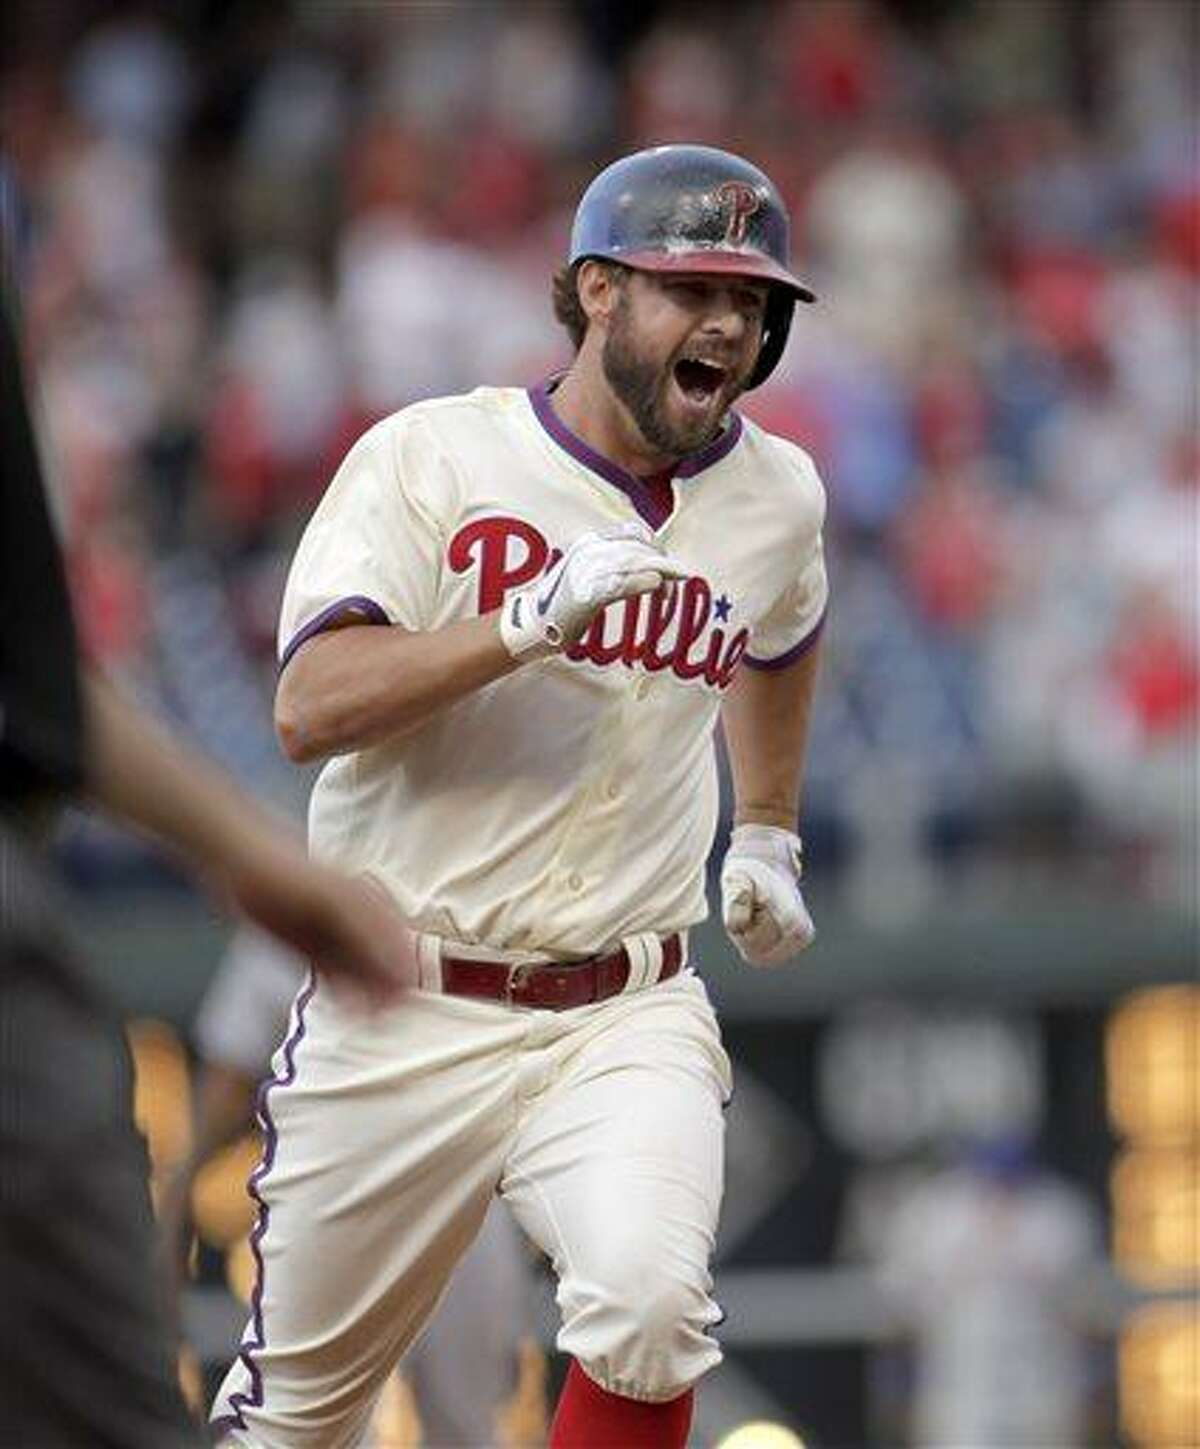 Philadelphia Phillies' Kevin Frandsen runs the bases after he hit a solo home run against the New York Mets in the ninth inning of a baseball game Saturday, June 22, 2013, in Philadelphia. The Phillies won 8-7. (AP Photo/H. Rumph Jr)